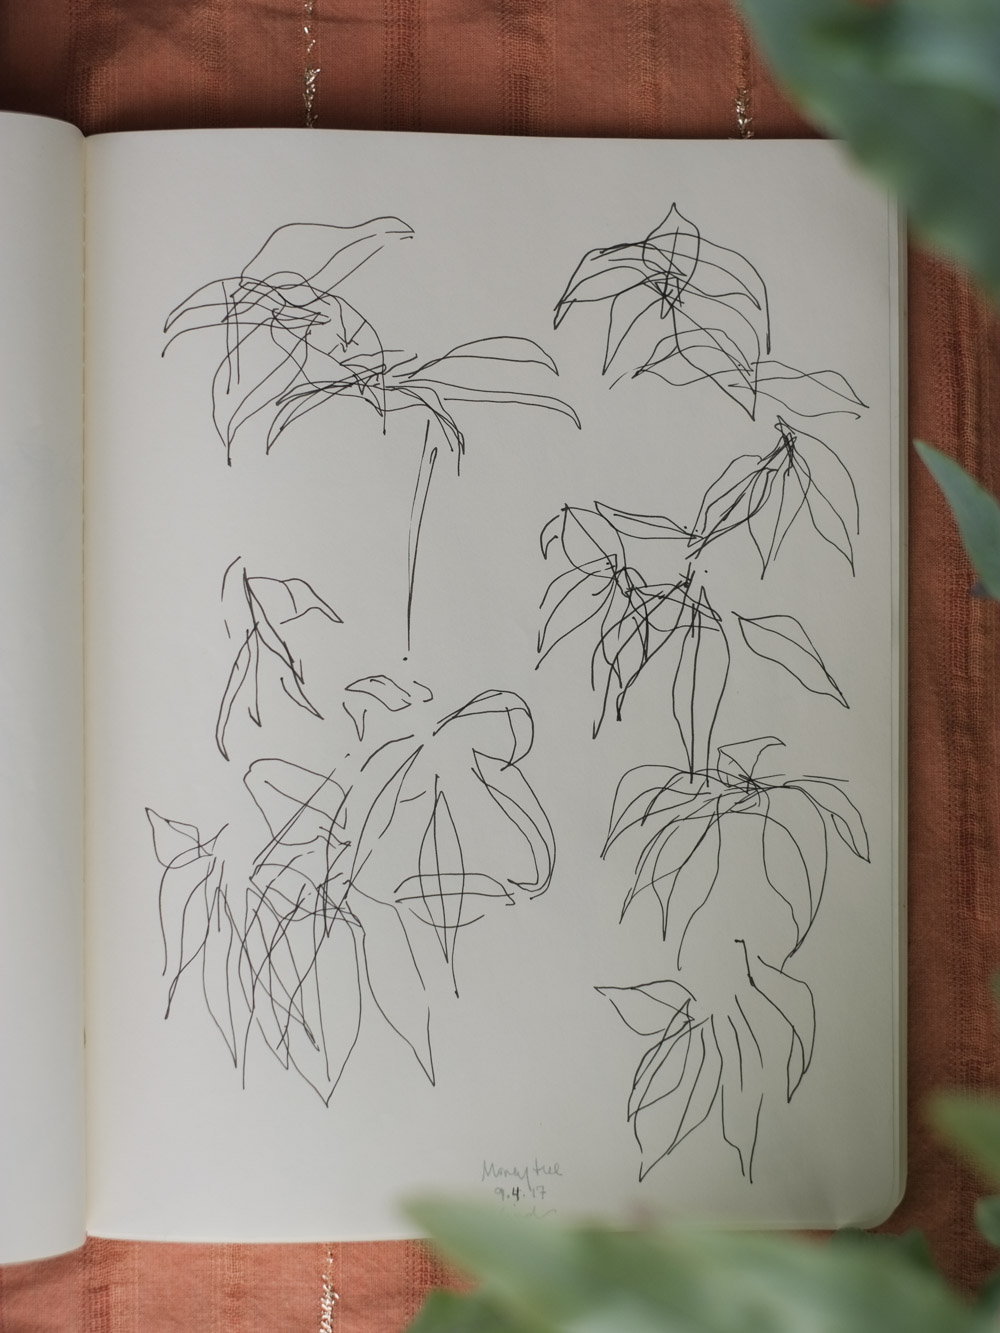 Erin_Ellis_daily_botanical_blind_drawings_sept_2017.jpg-4.jpg